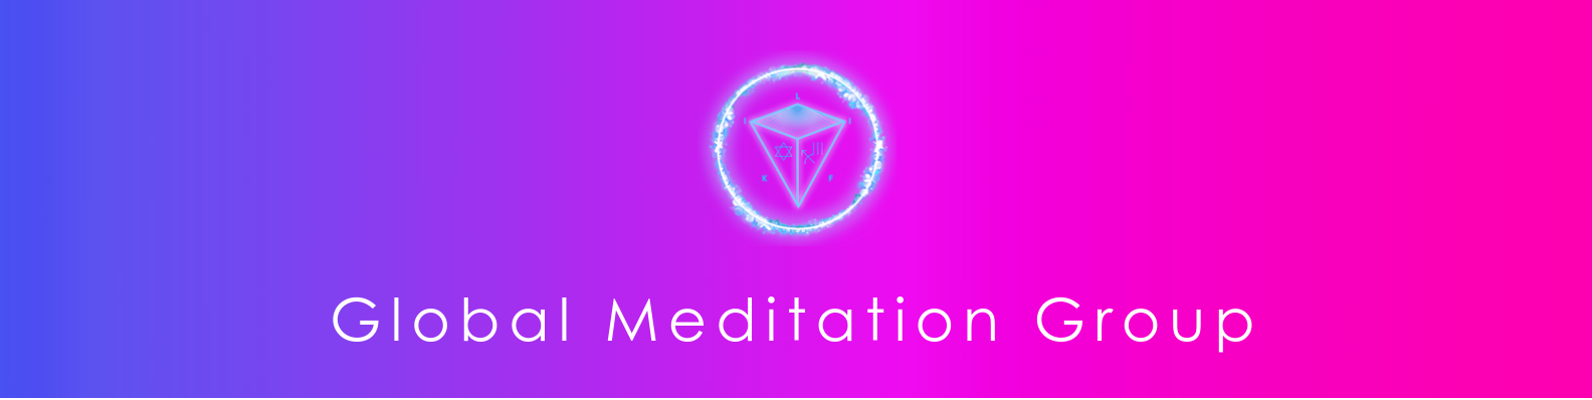 Global Meditation Group